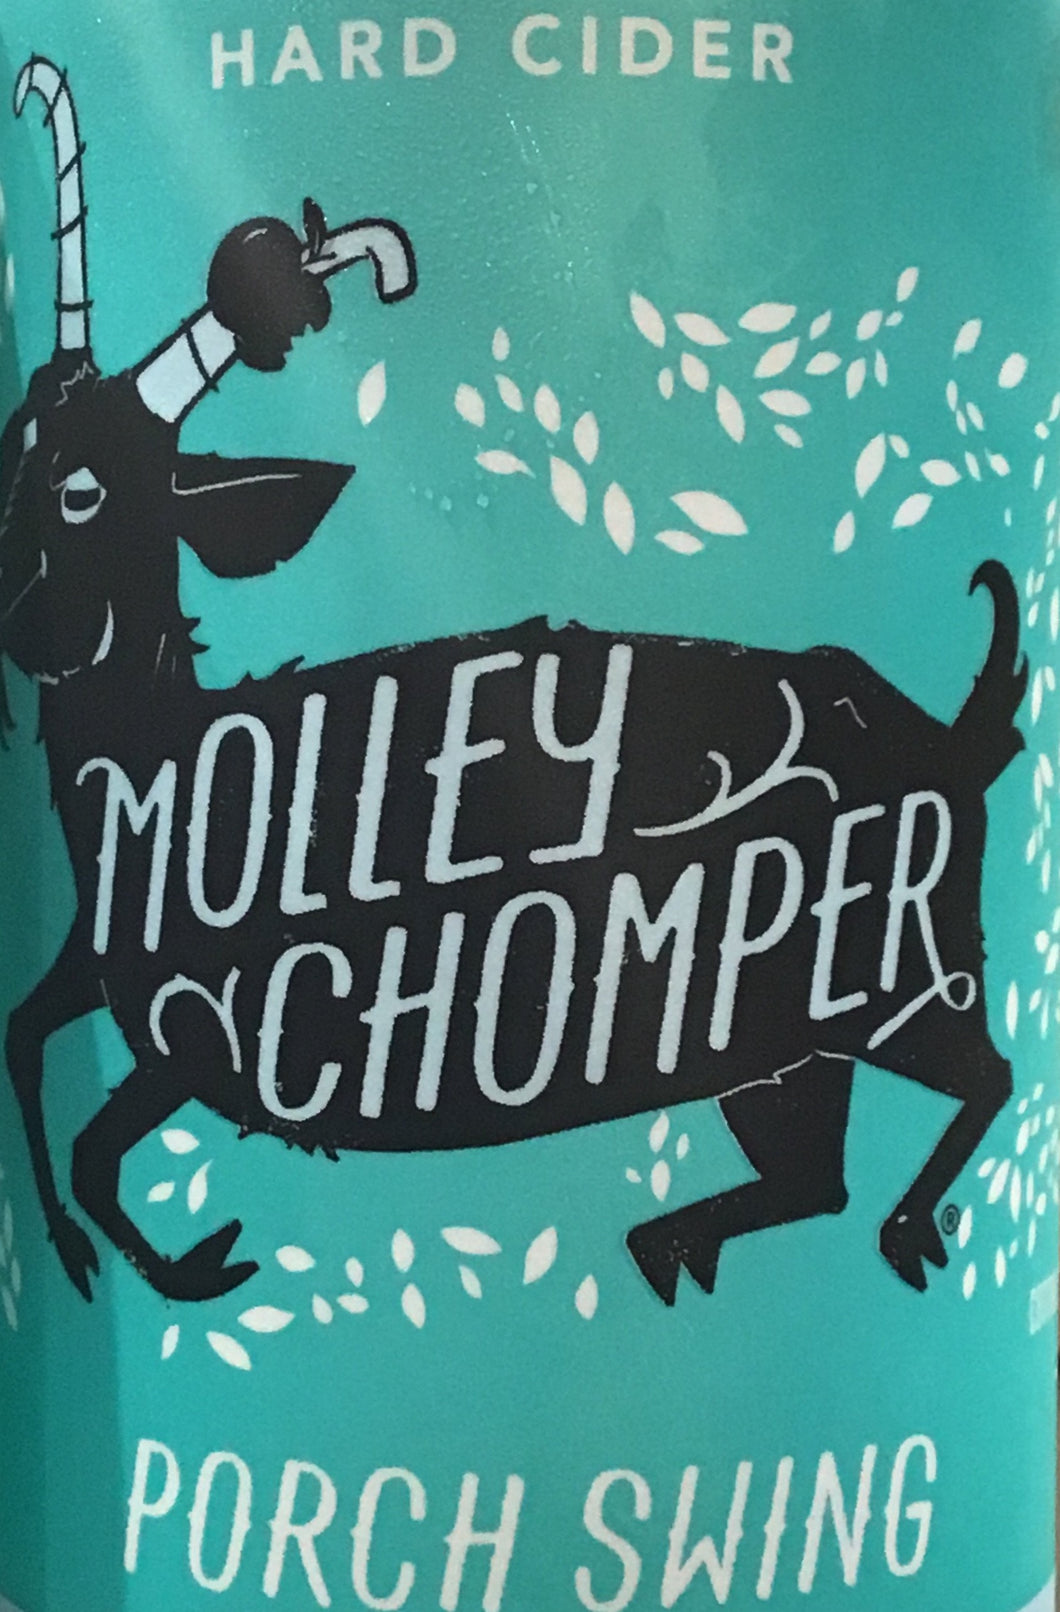 Molley Chomper 'Porch Swing' - 12 oz Can